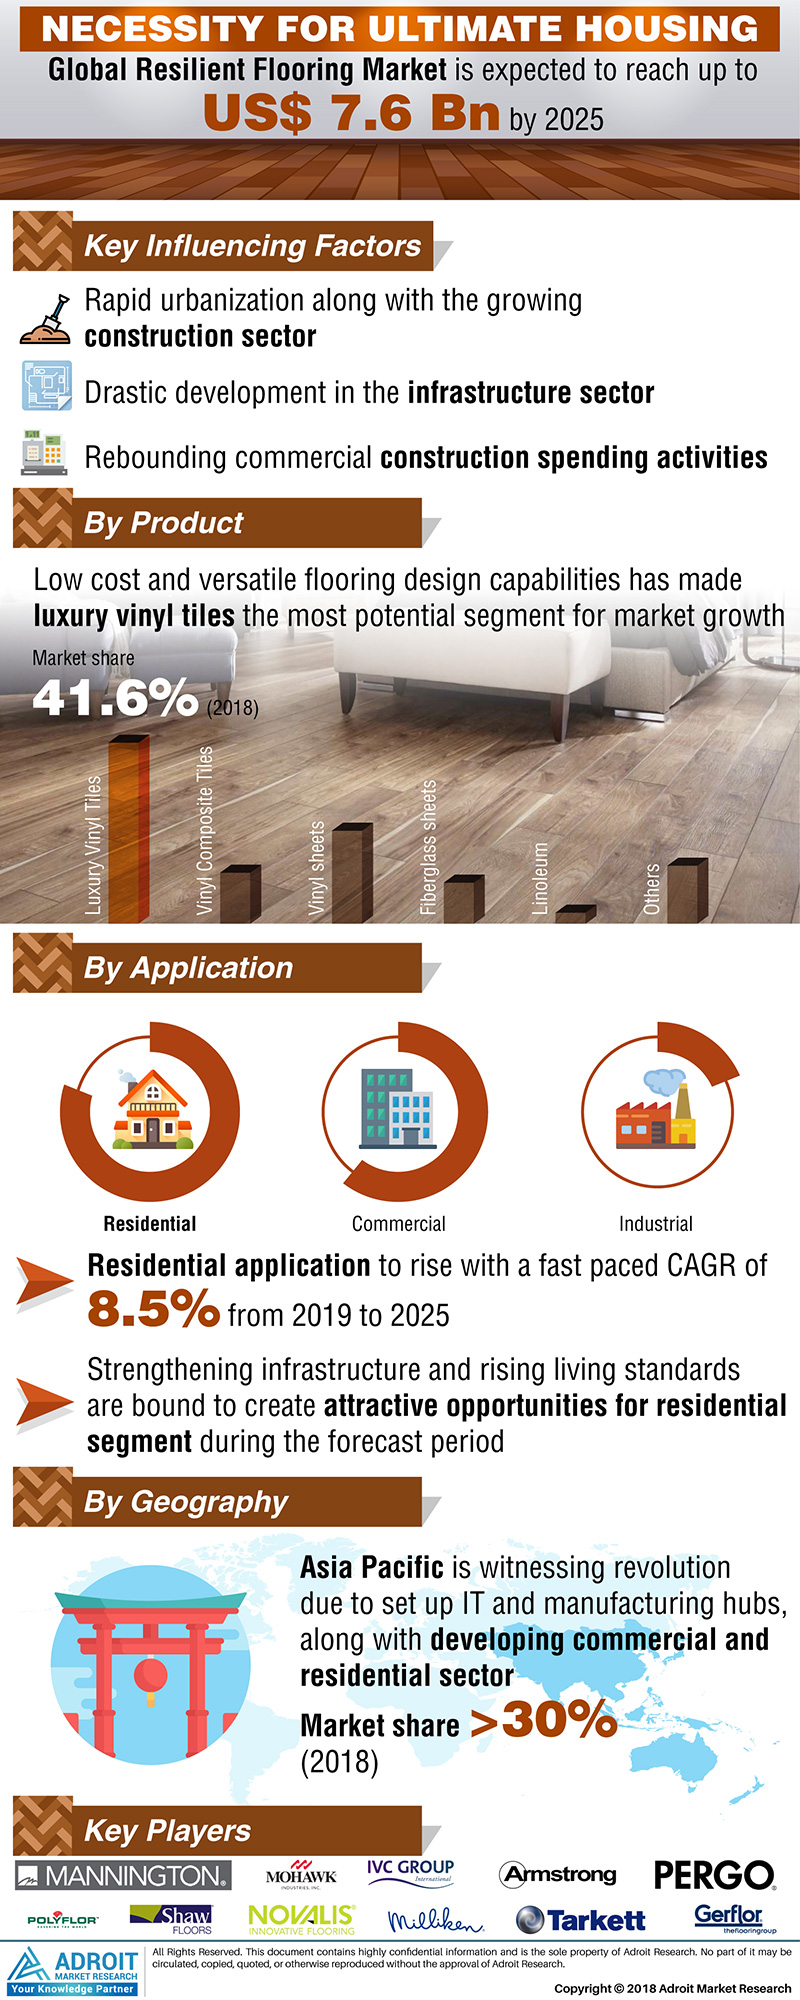 Global Resilient Flooring Market Size 2017 by Product, Application, Region and Forecast 2018 to 2025